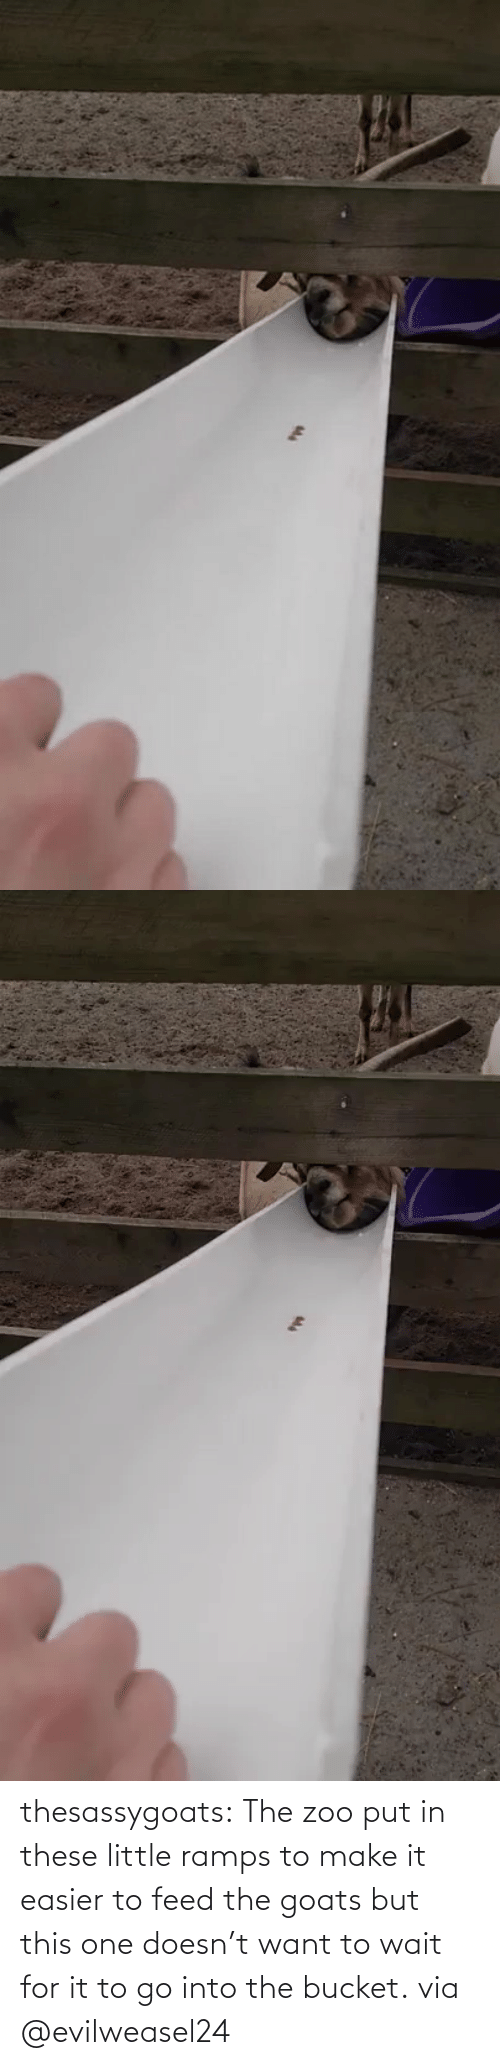 Target: thesassygoats: The zoo put in these little ramps to make it easier to feed the goats but this one doesn't want to wait for it to go into the bucket. via @evilweasel24